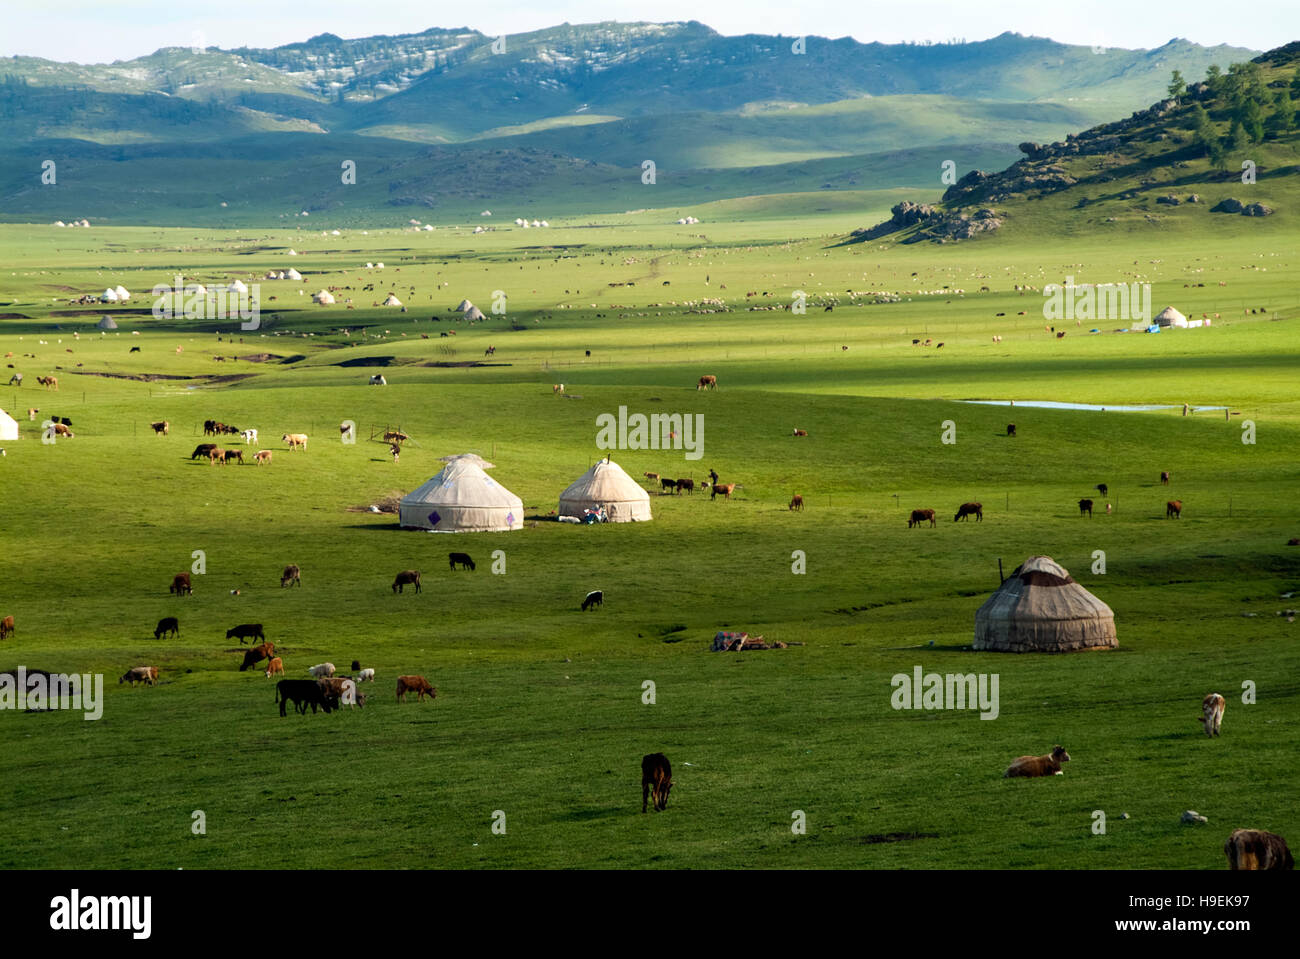 Nomad yurts, sheep and camels in the Kanas Valley at the Altai Mountains in China's Xinjiang Province bordering - Stock Image